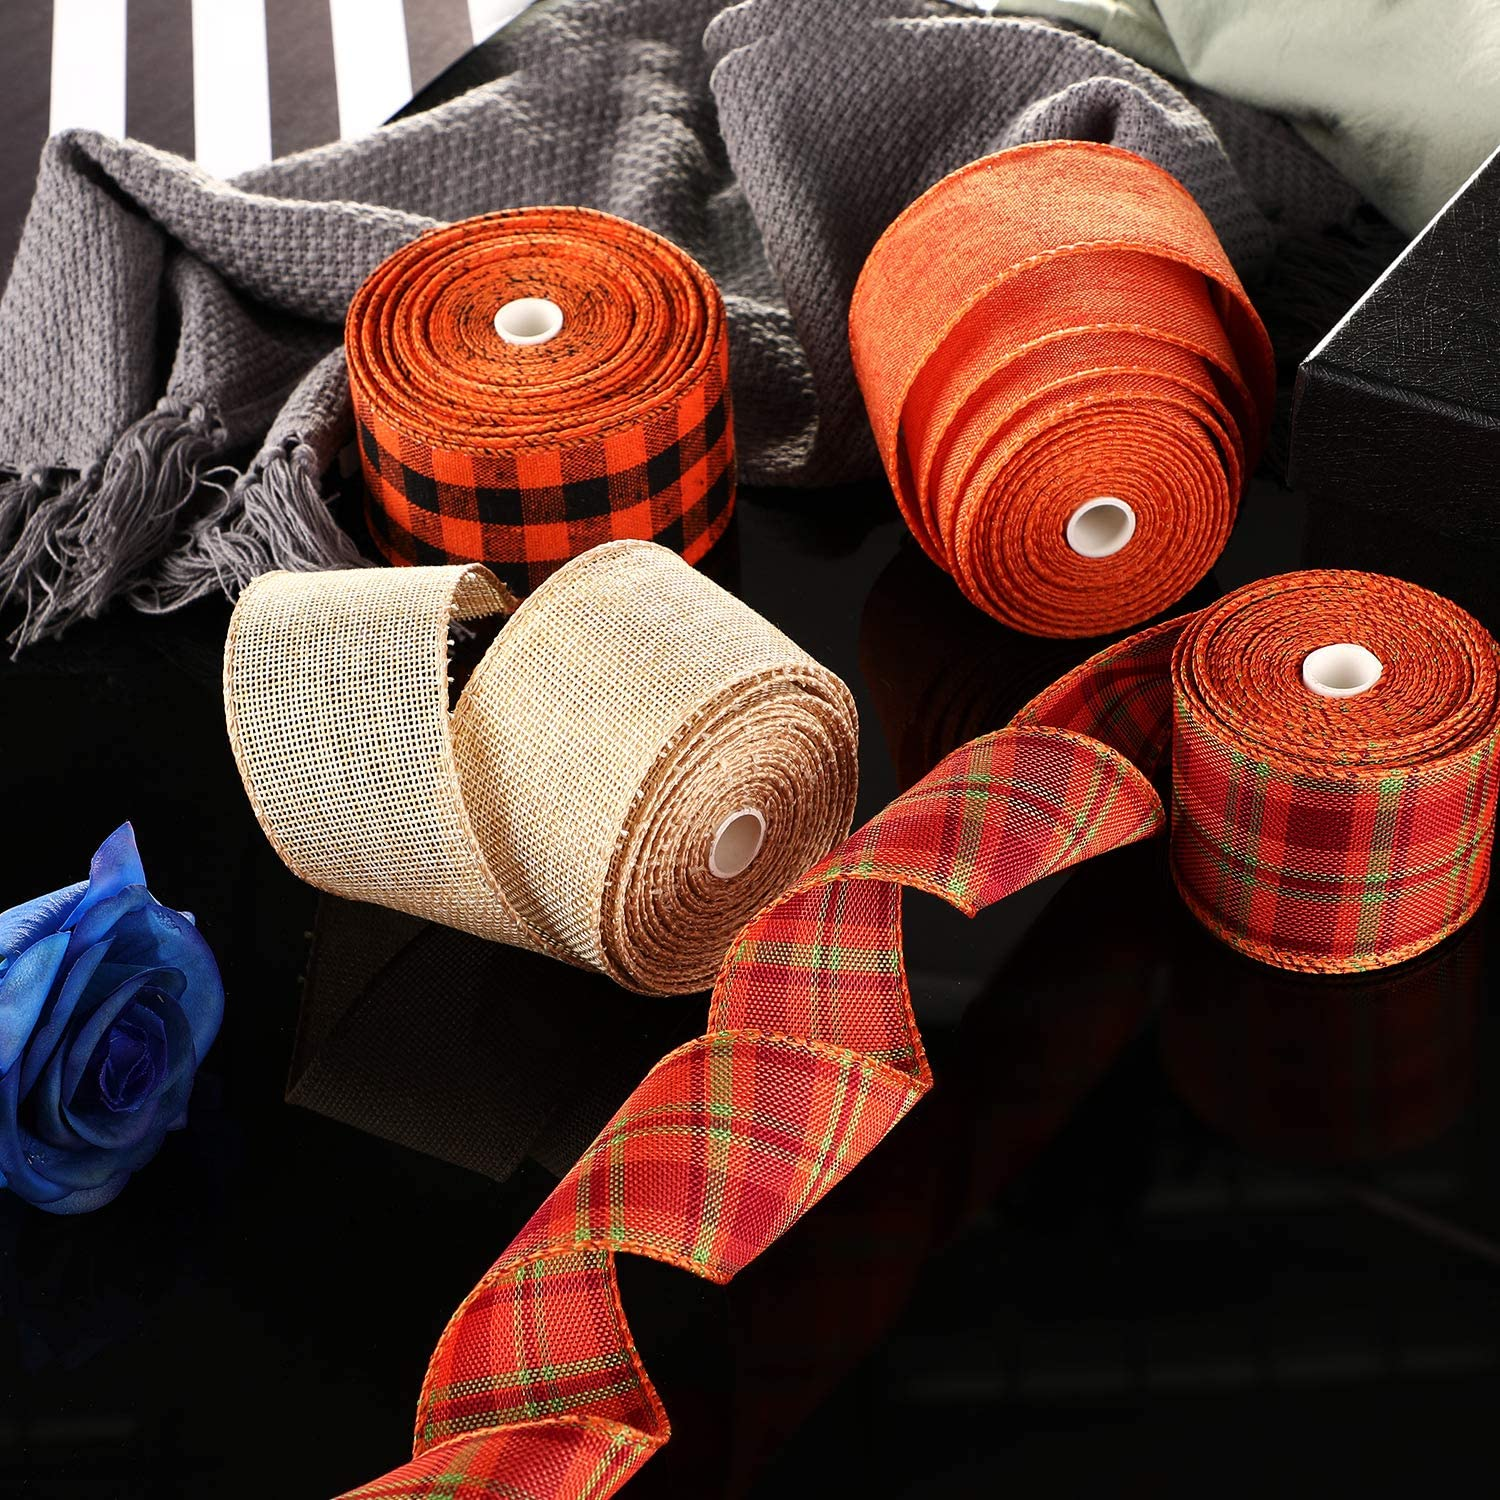 236 x 1.97 Inches 4 Rolls Plaid Burlap Ribbon Thanksgiving Wrapping Ribbon Wired Craft Ribbon Multi-Color Plaid Ribbon for Thanksgiving Decoration Floral Bows Crafts